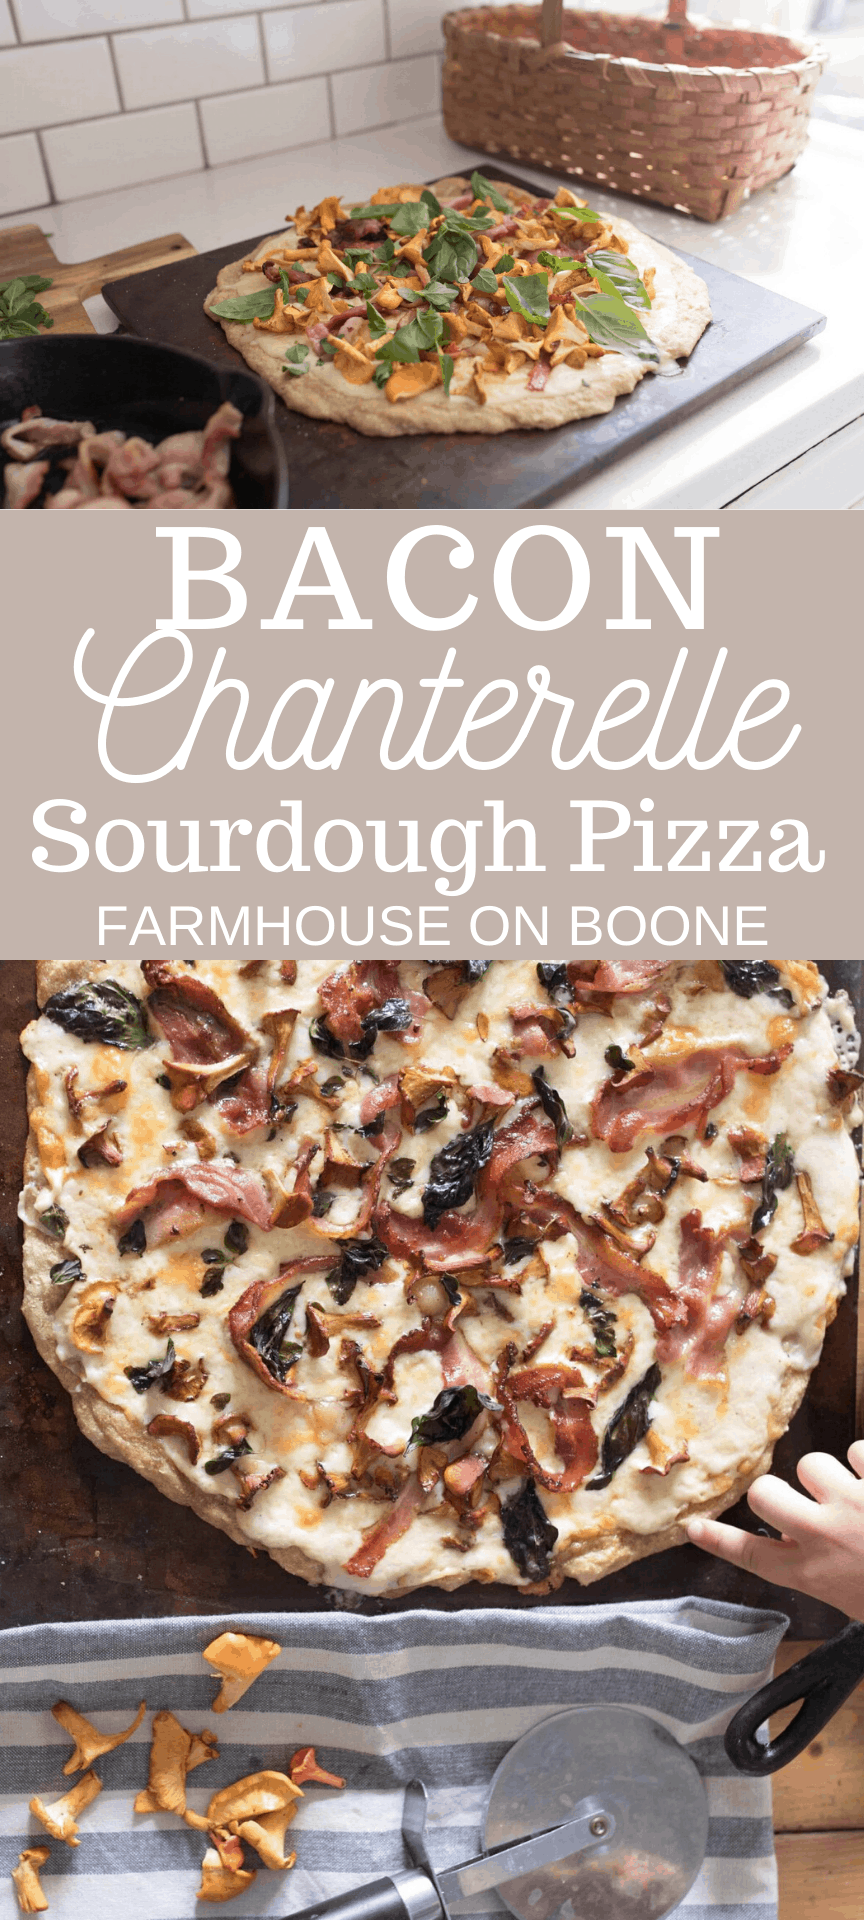 two pictures of chanterelle mushroom pizza with bacon